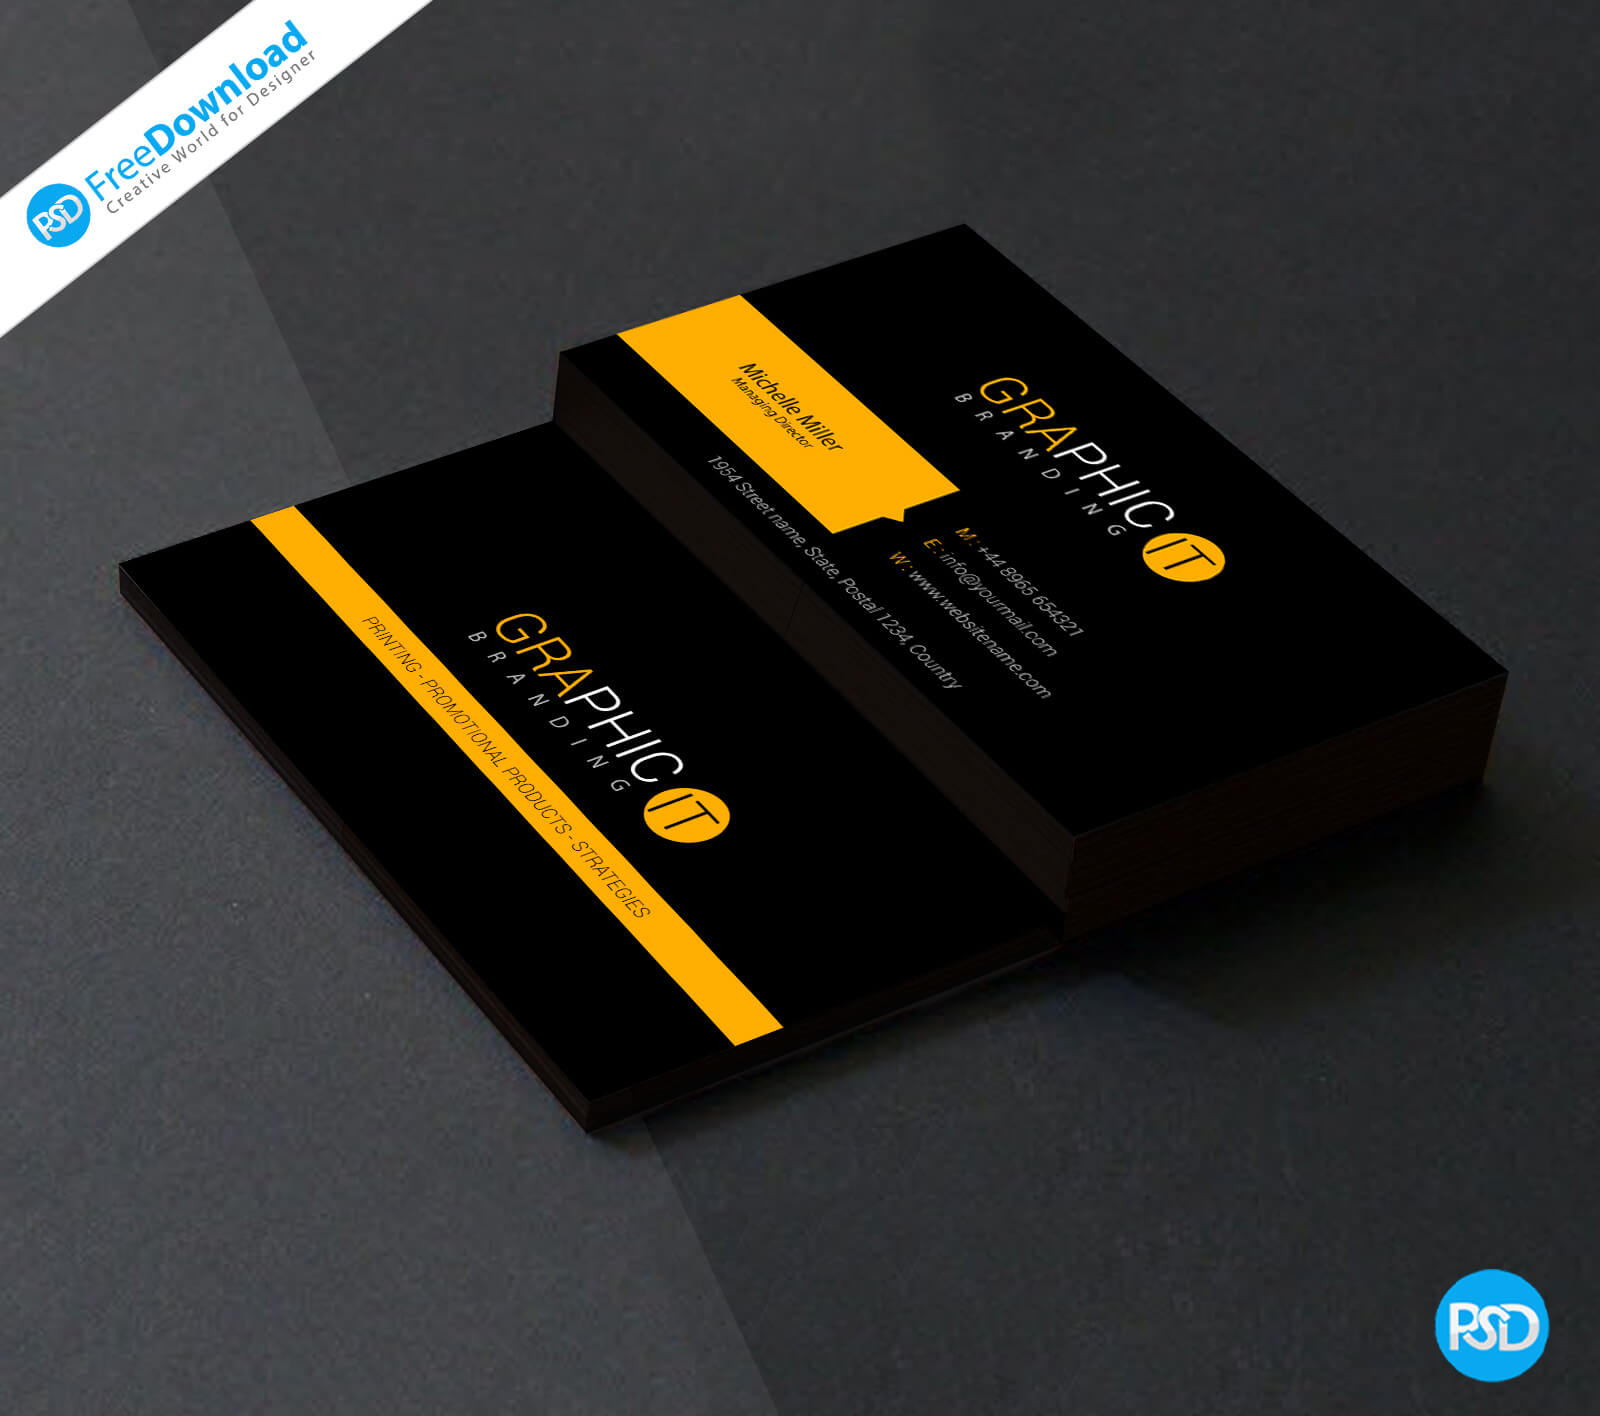 150+ Free Business Card Psd Templates Intended For Free Business Card Templates In Psd Format